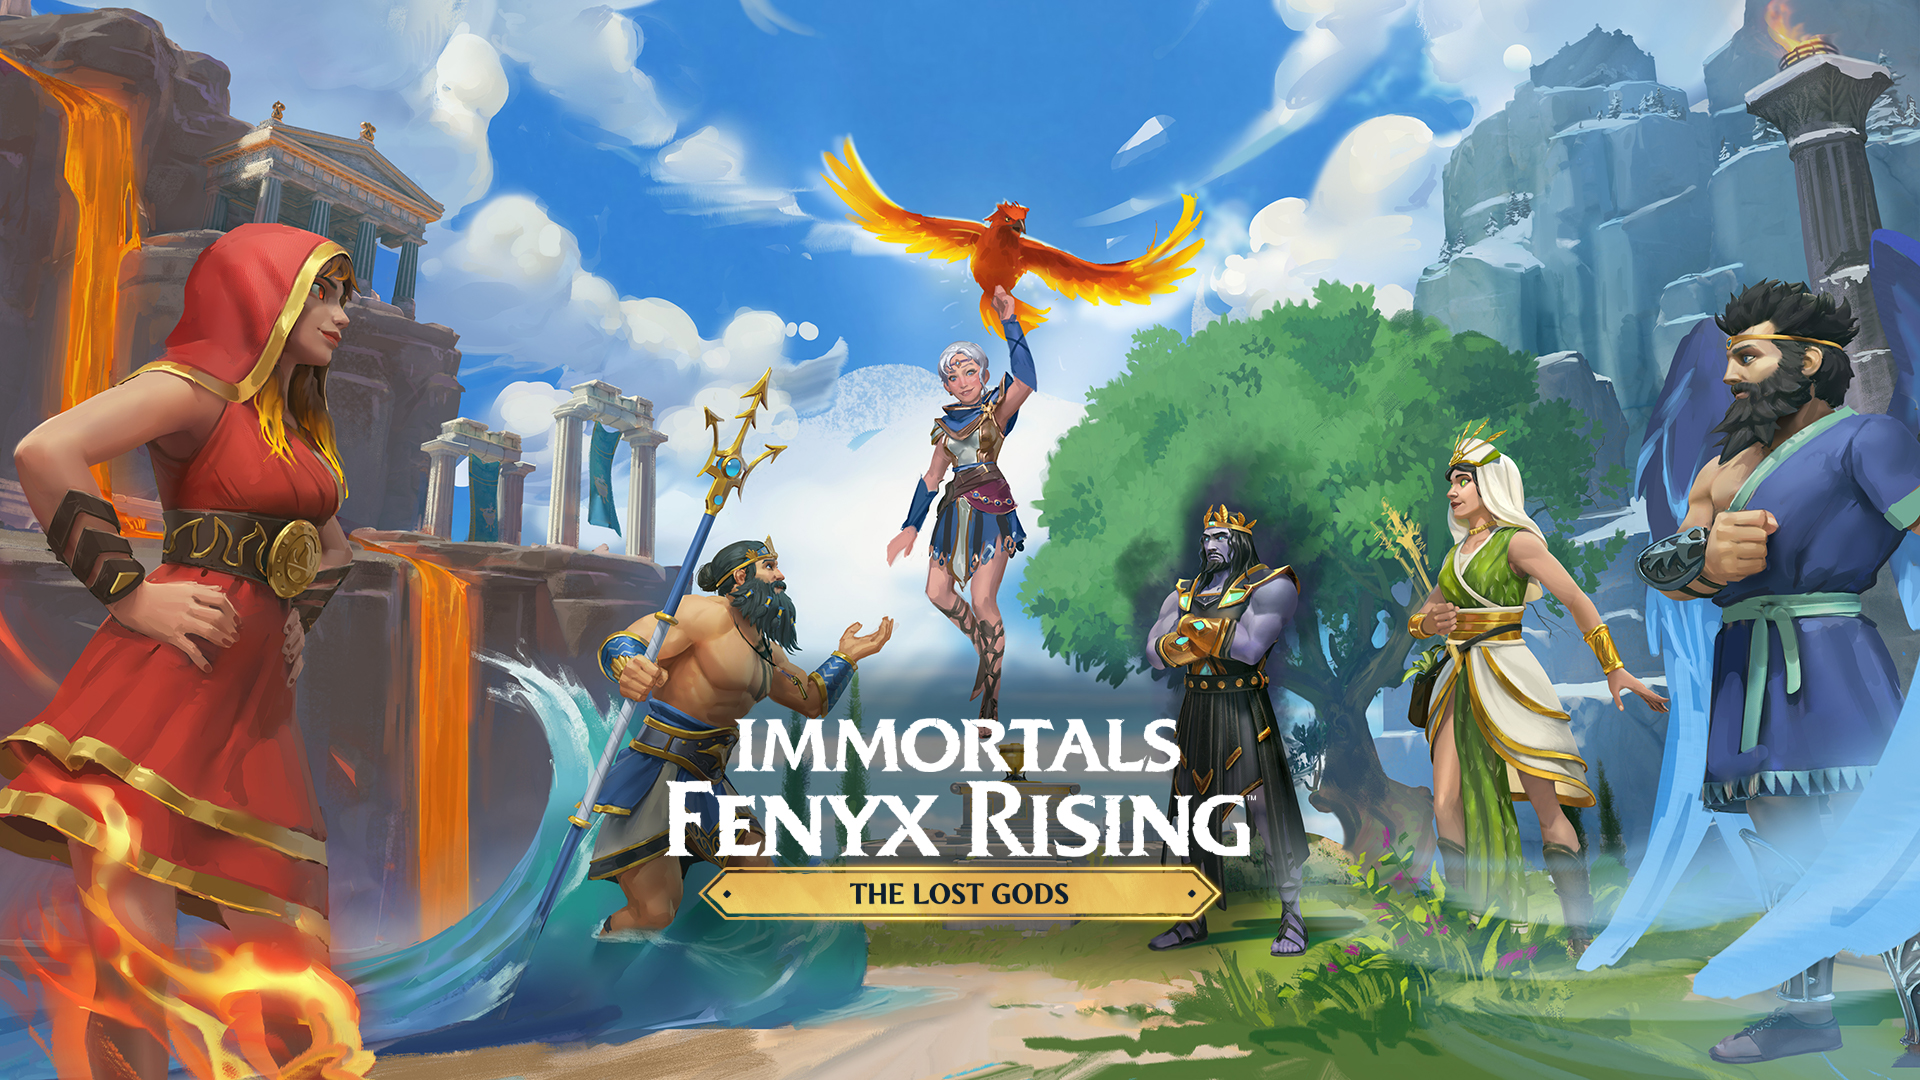 Immortals Fenyx Rising: The Lost Gods Launches April 22